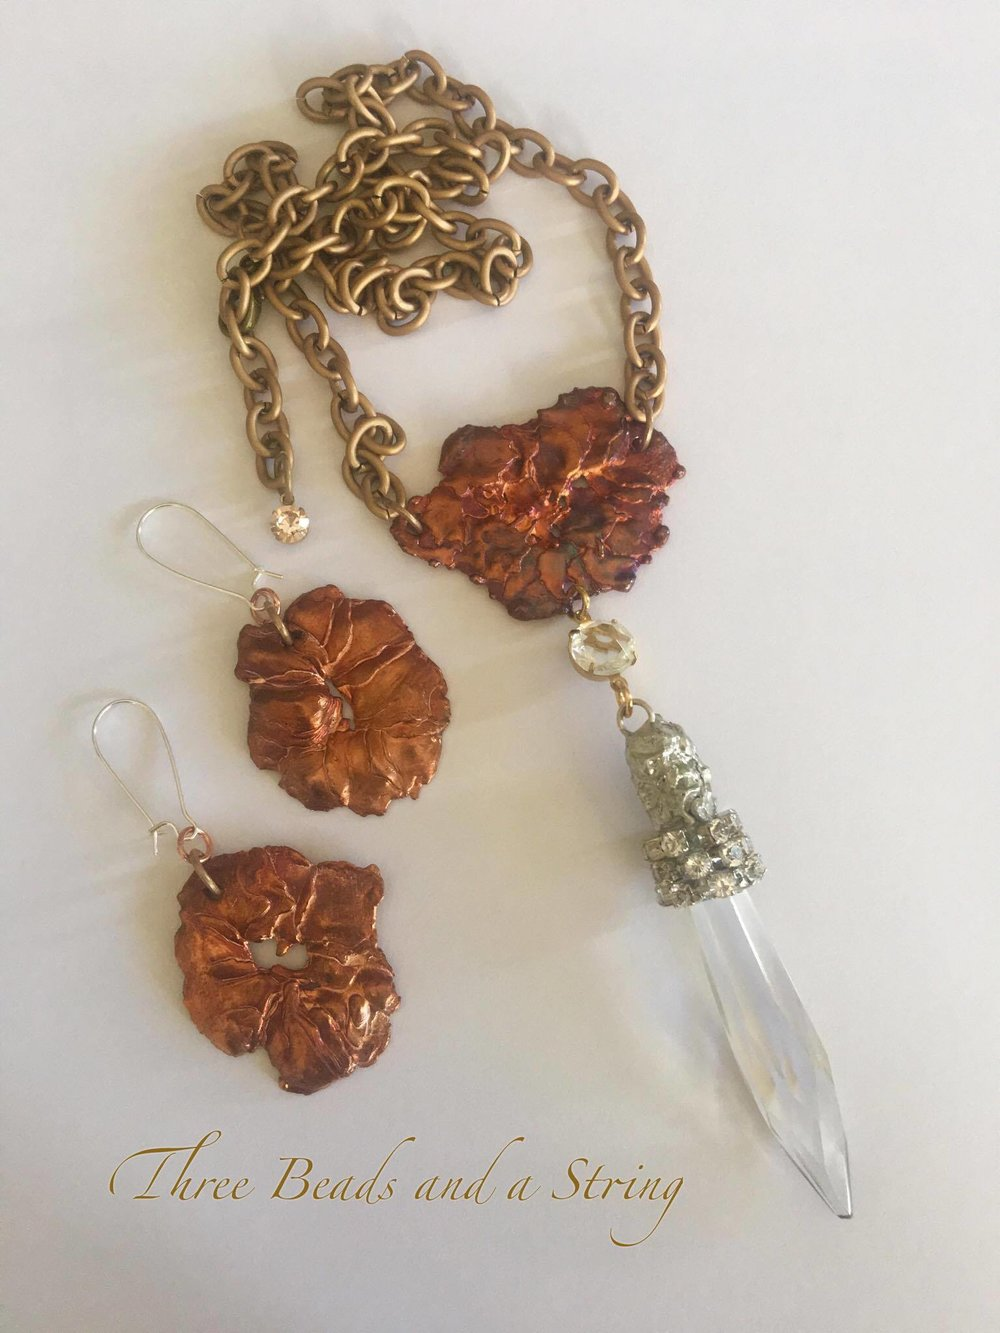 Isn't this lovely?  Patti from   Three Beads and a String   made this from the copper splash she purchased from us.